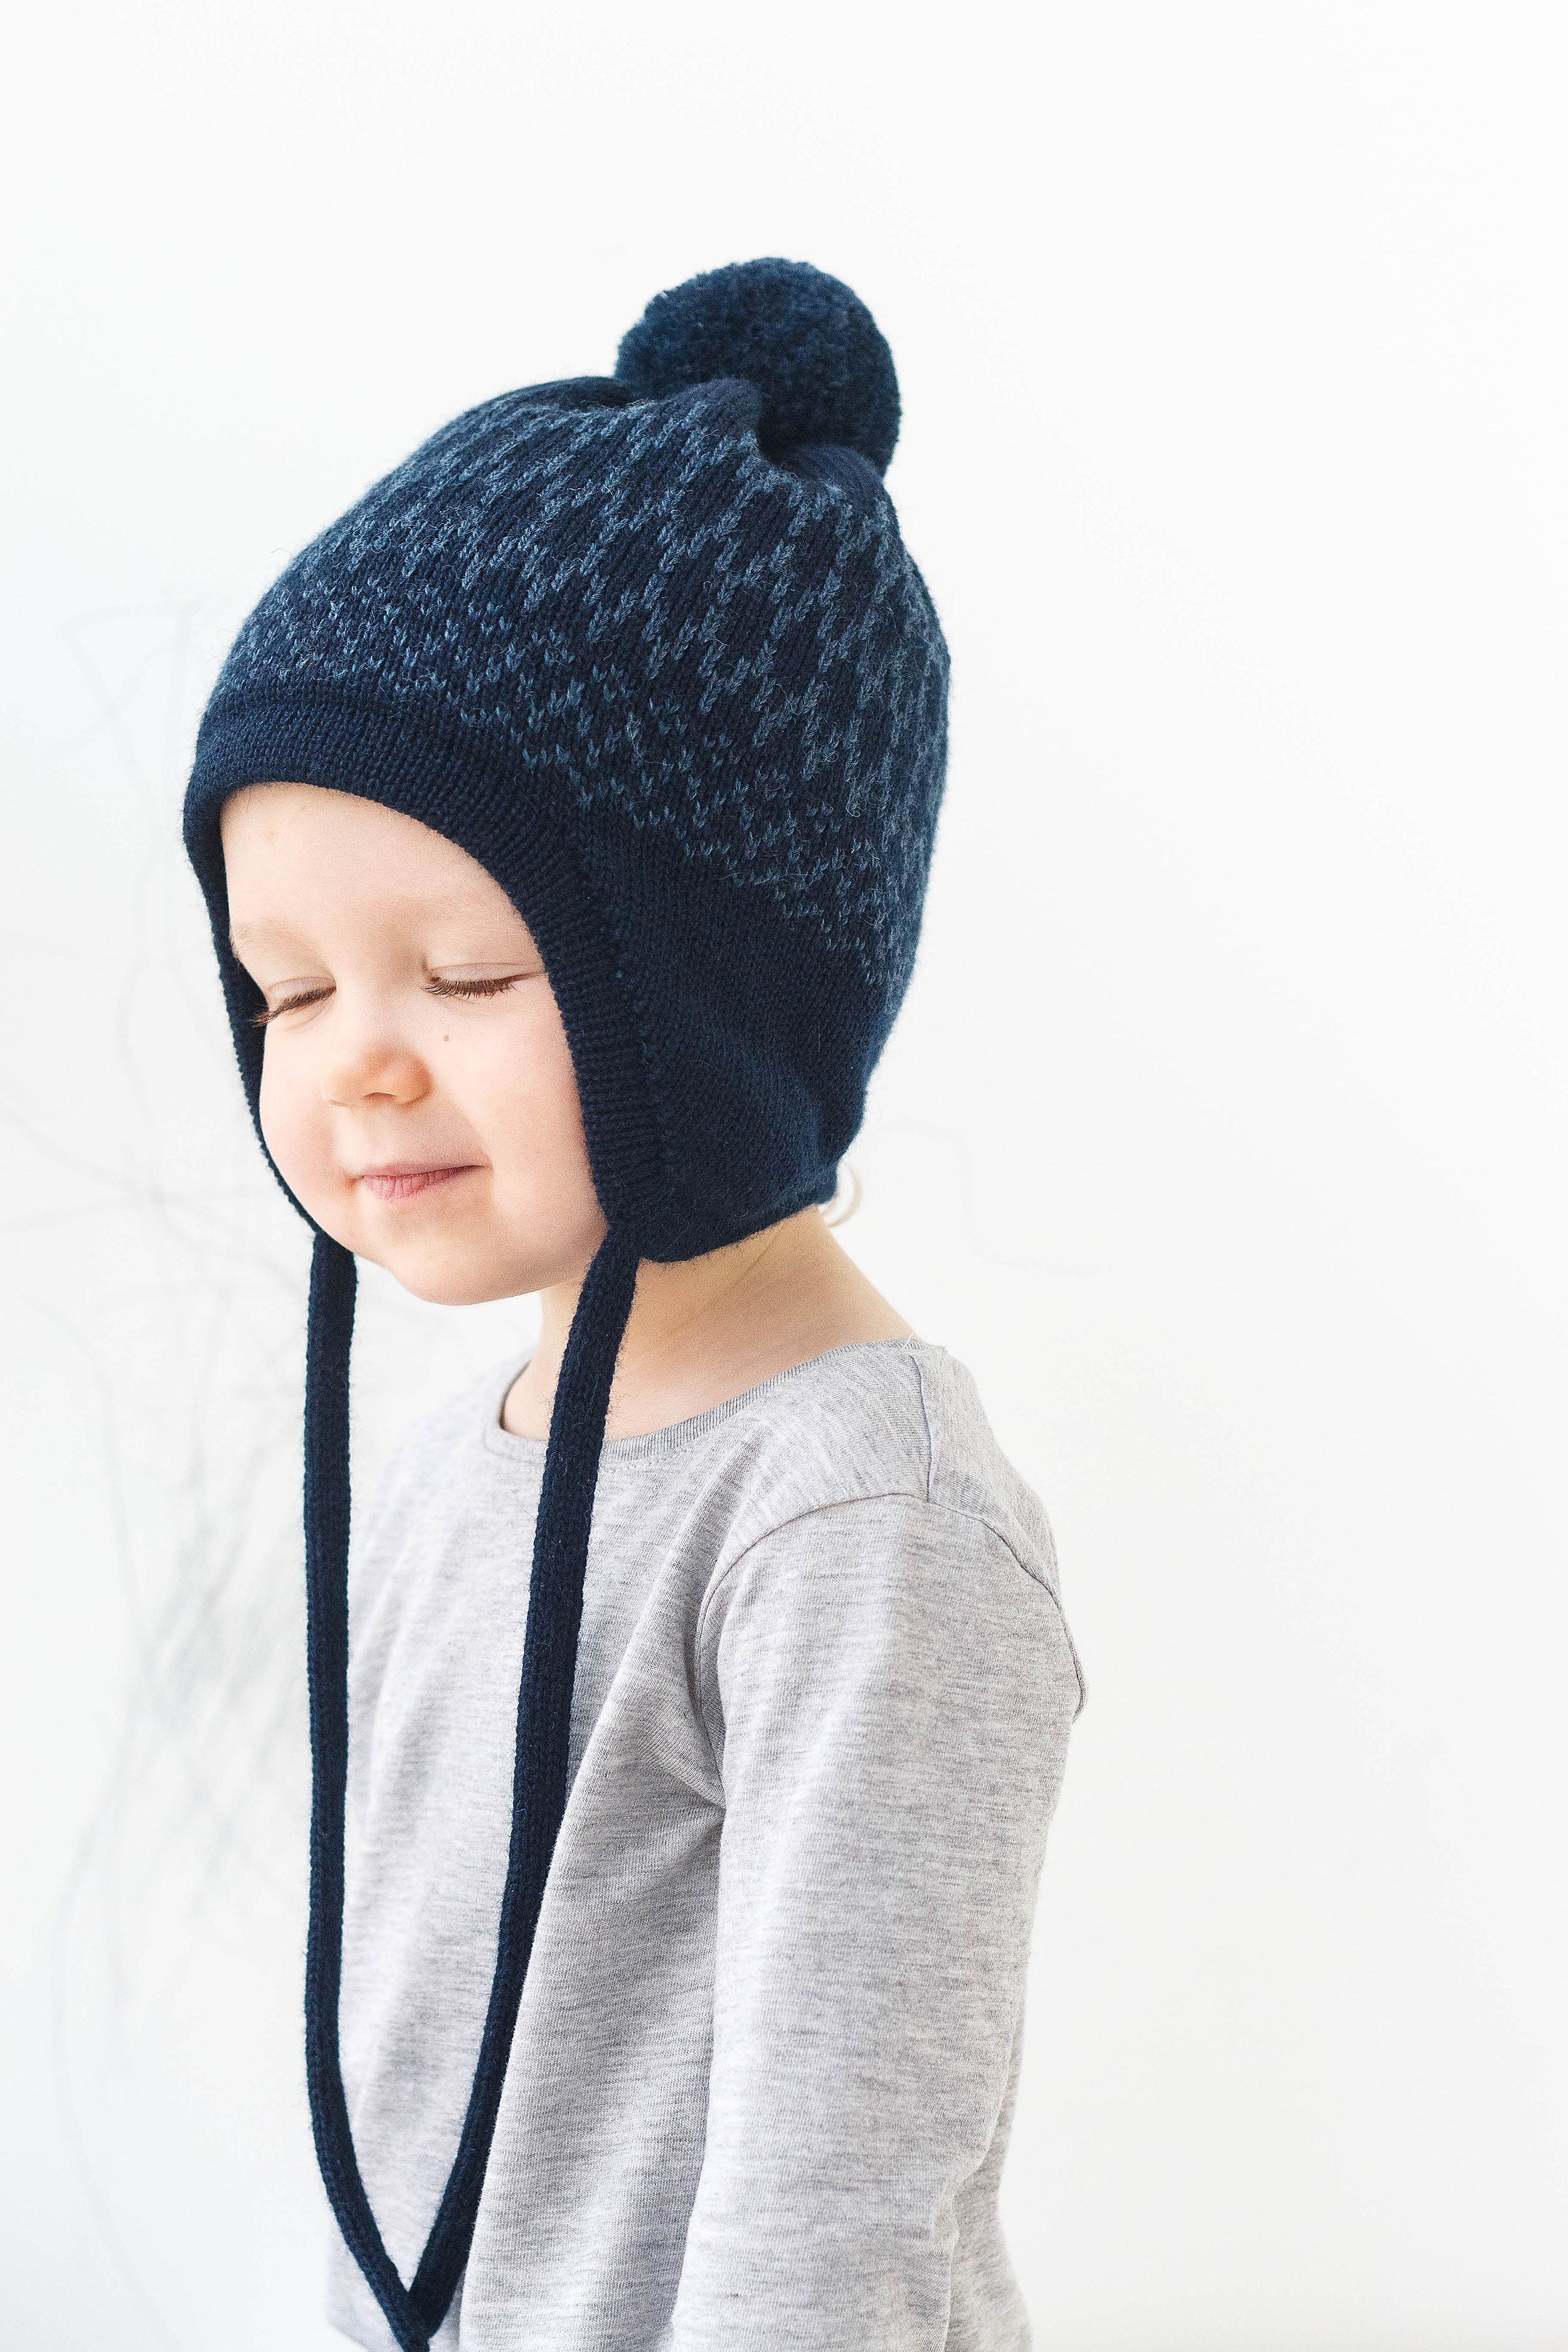 Infant Baby Toddler Girl Pom Braid Ears Beanie Hat winter warm knit cover cap